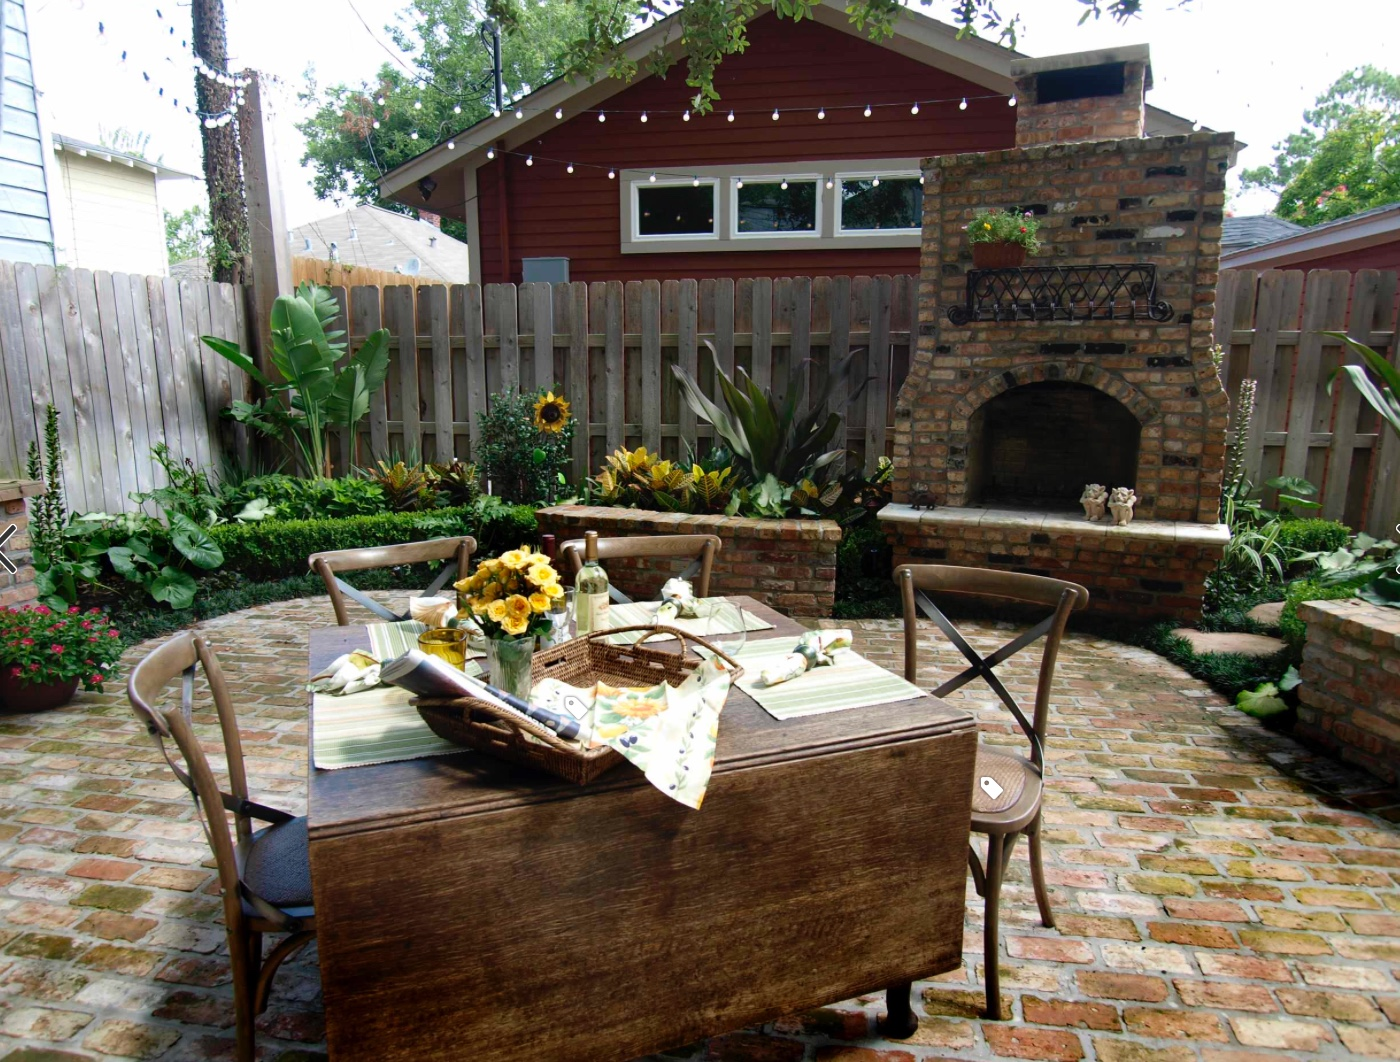 If Your Home Is In Need Of Some Outdoor Space, Adding A Patio Or Deck Can  Increase Your Square Foot Without Being The Bank. Each Option Offers An  Area To ...